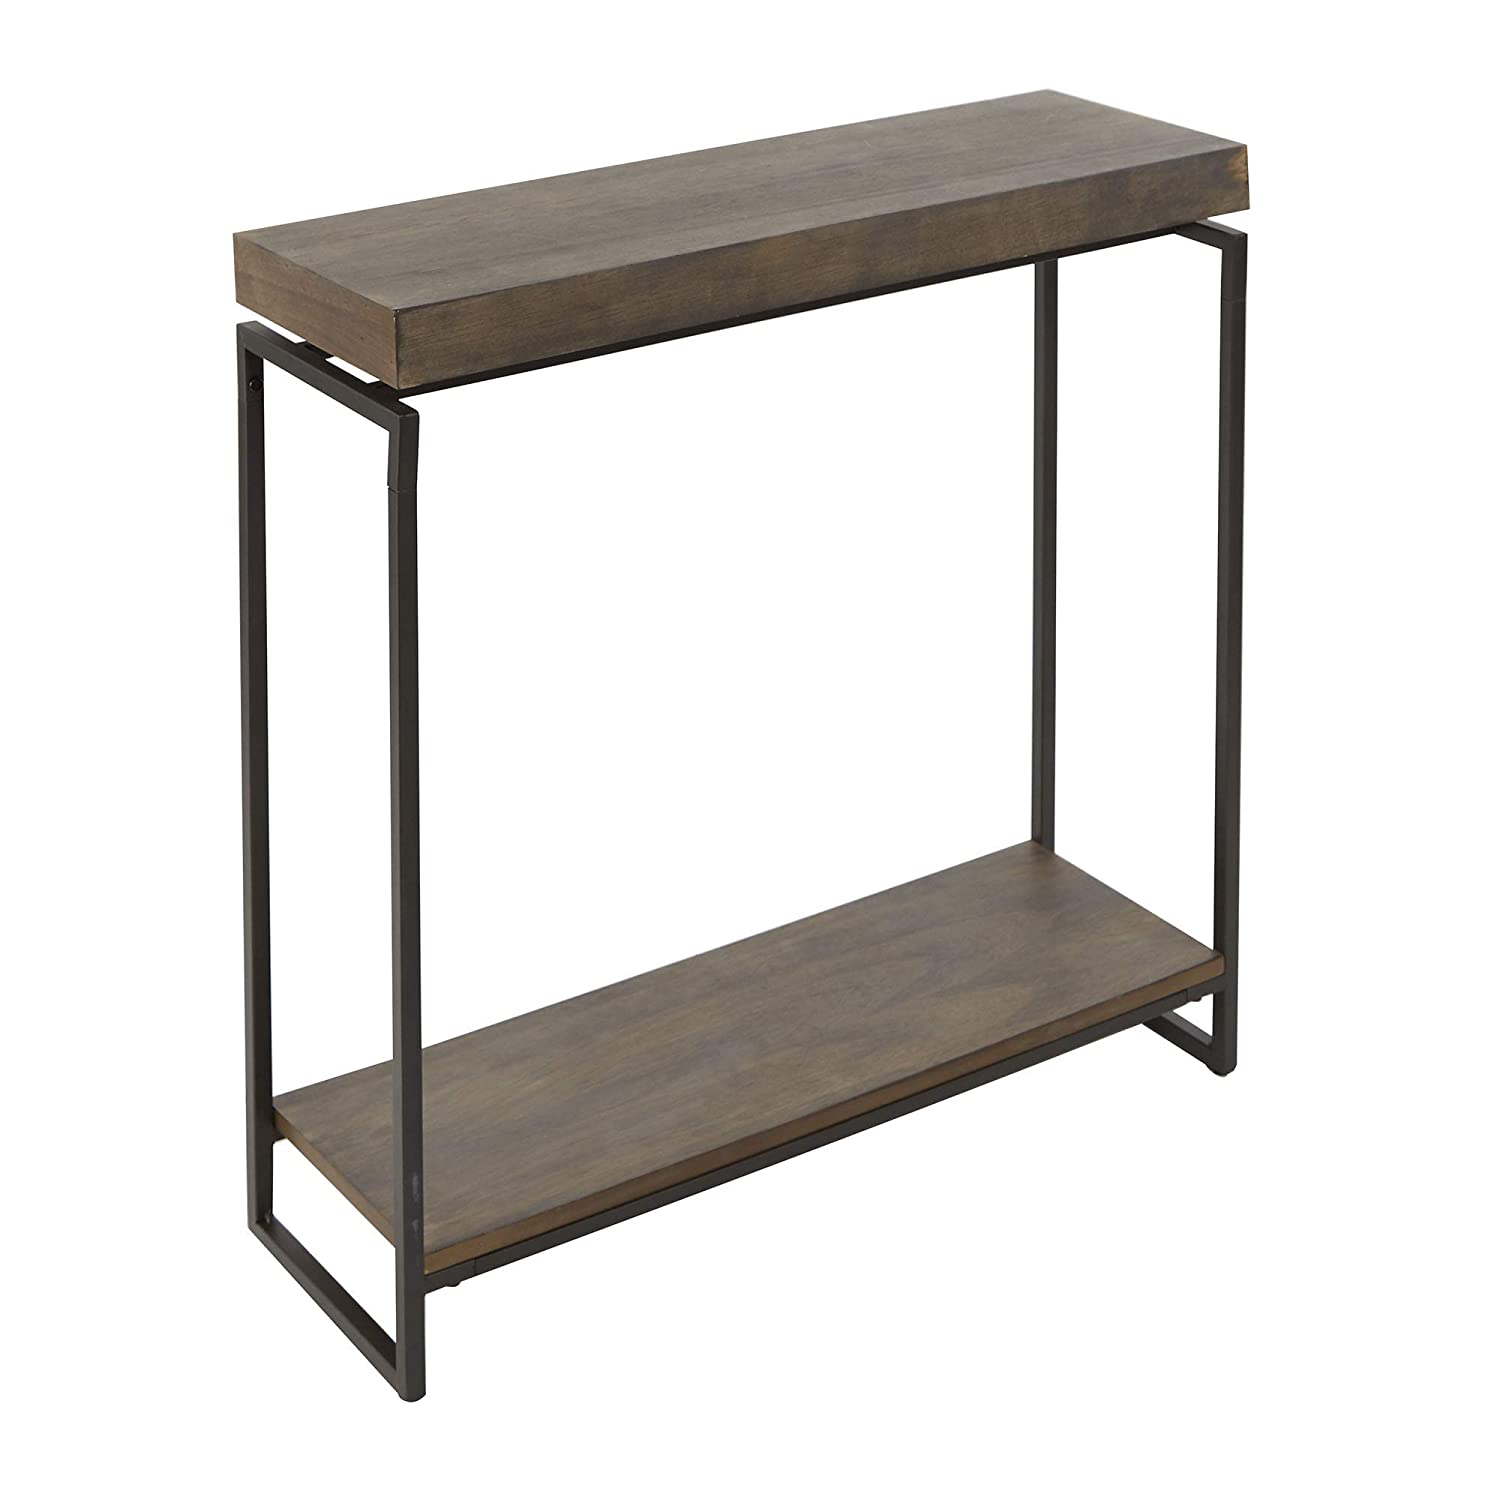 Amazon.com: Silverwood CPFT1449E Console Table Gunmetal Gray ...